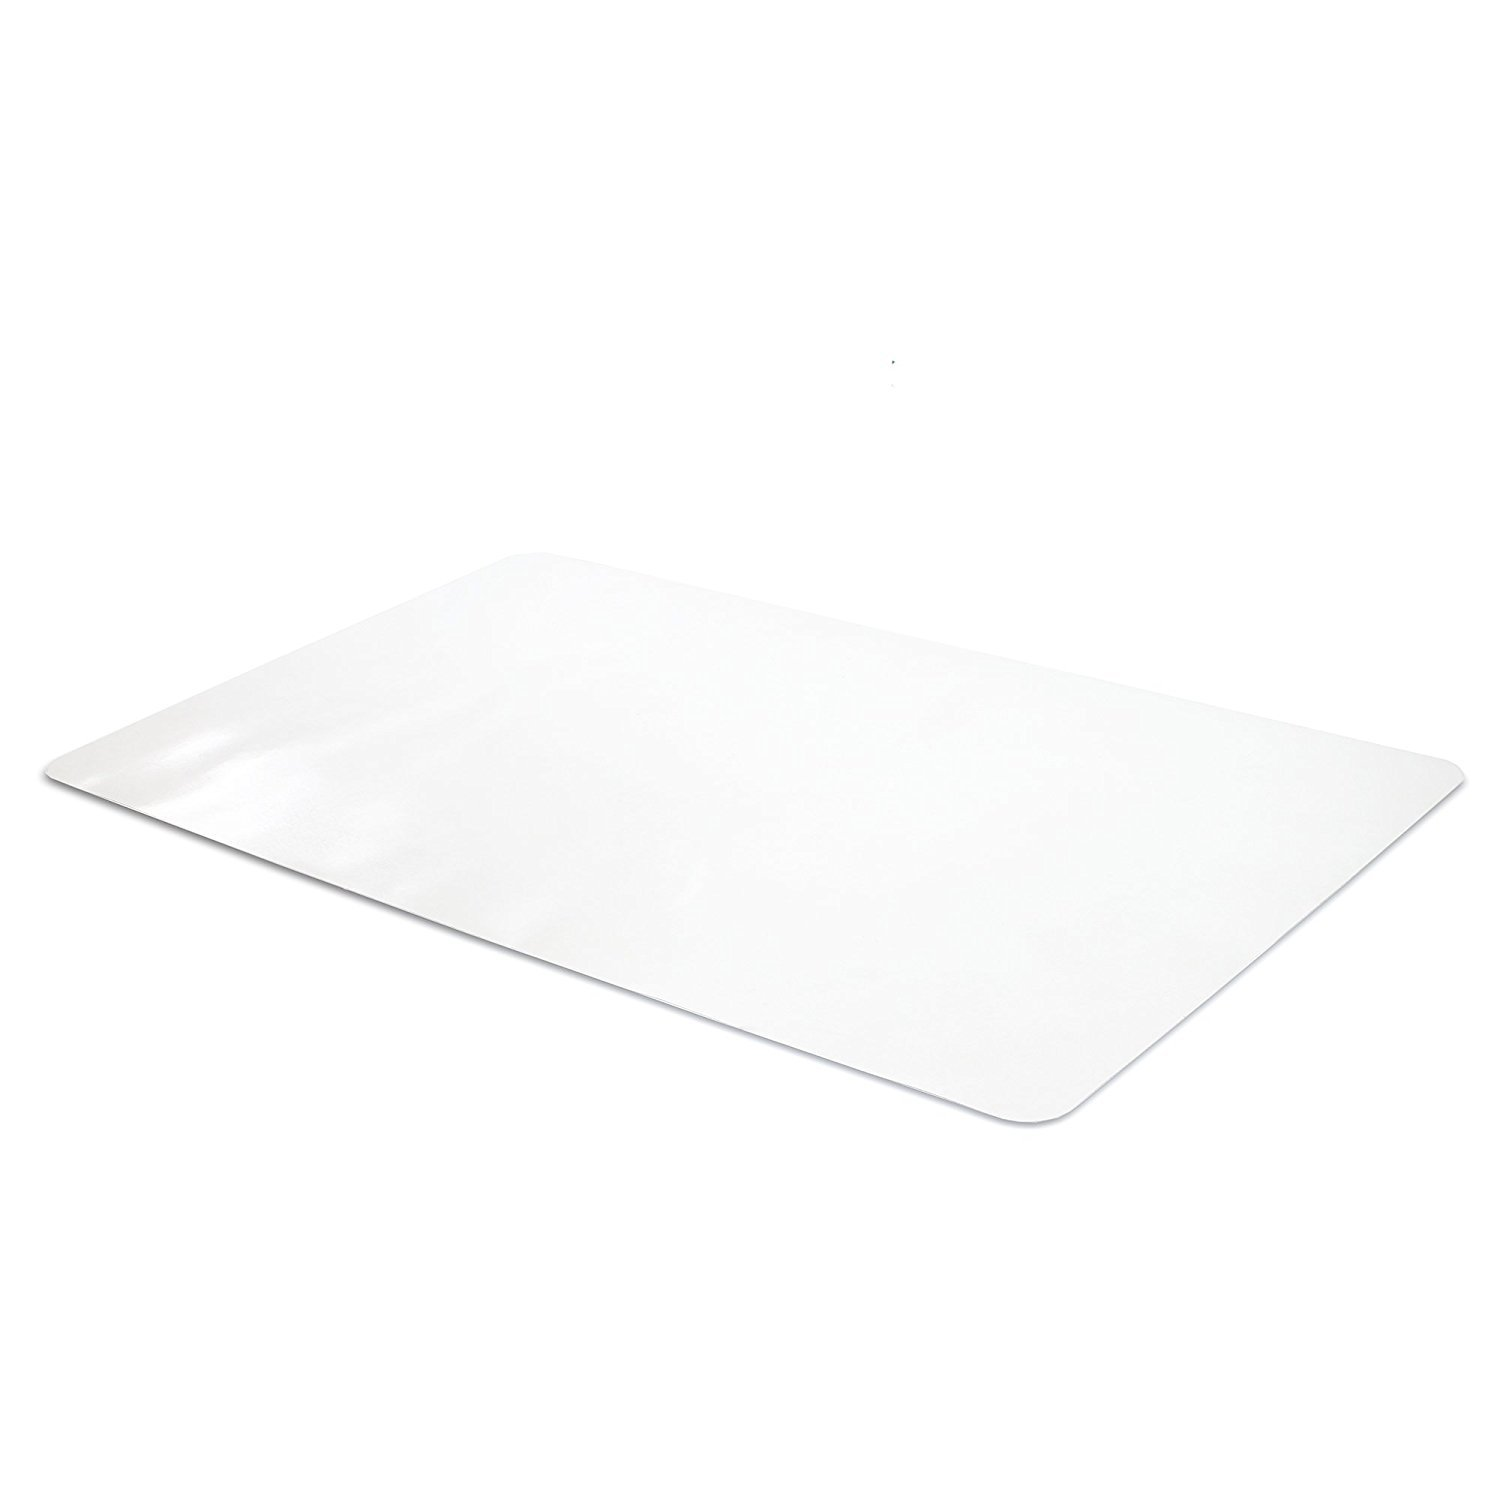 Office Desk Mat Clear Textured - 28 x 18 inch Plastic Computer Mat for Desk